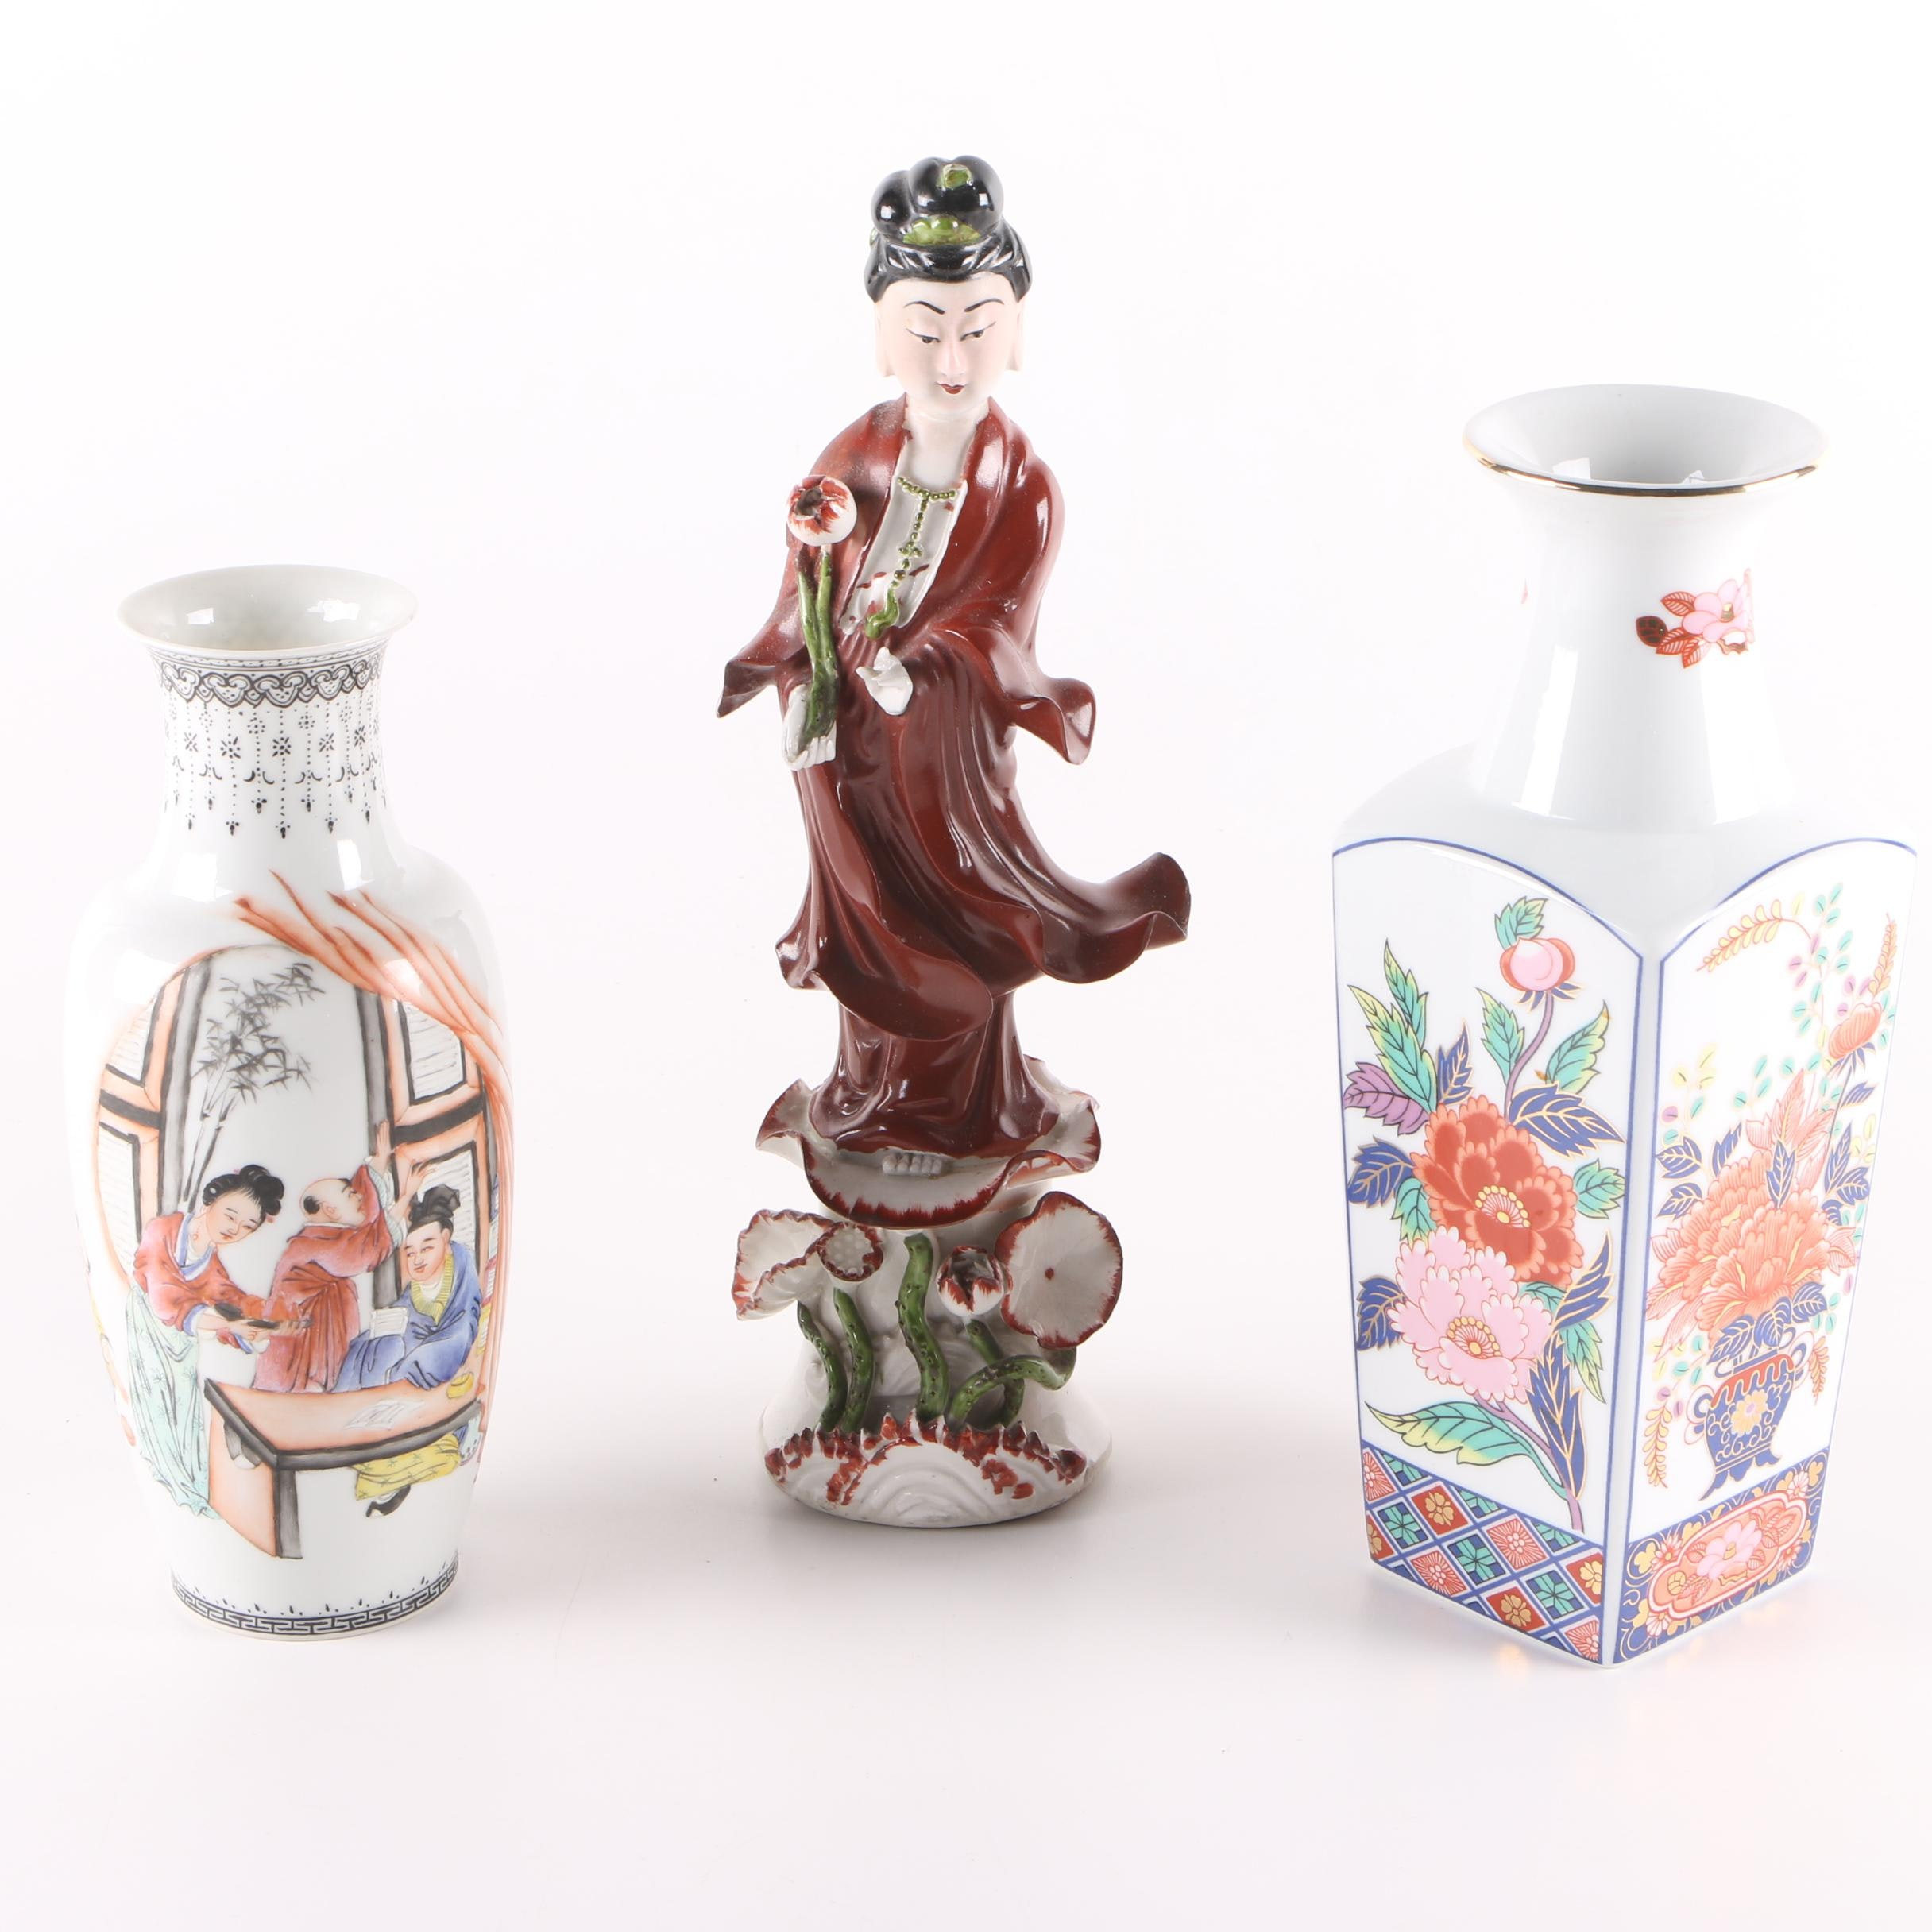 East Asian Ceramic Vases and Guanyin Figurine